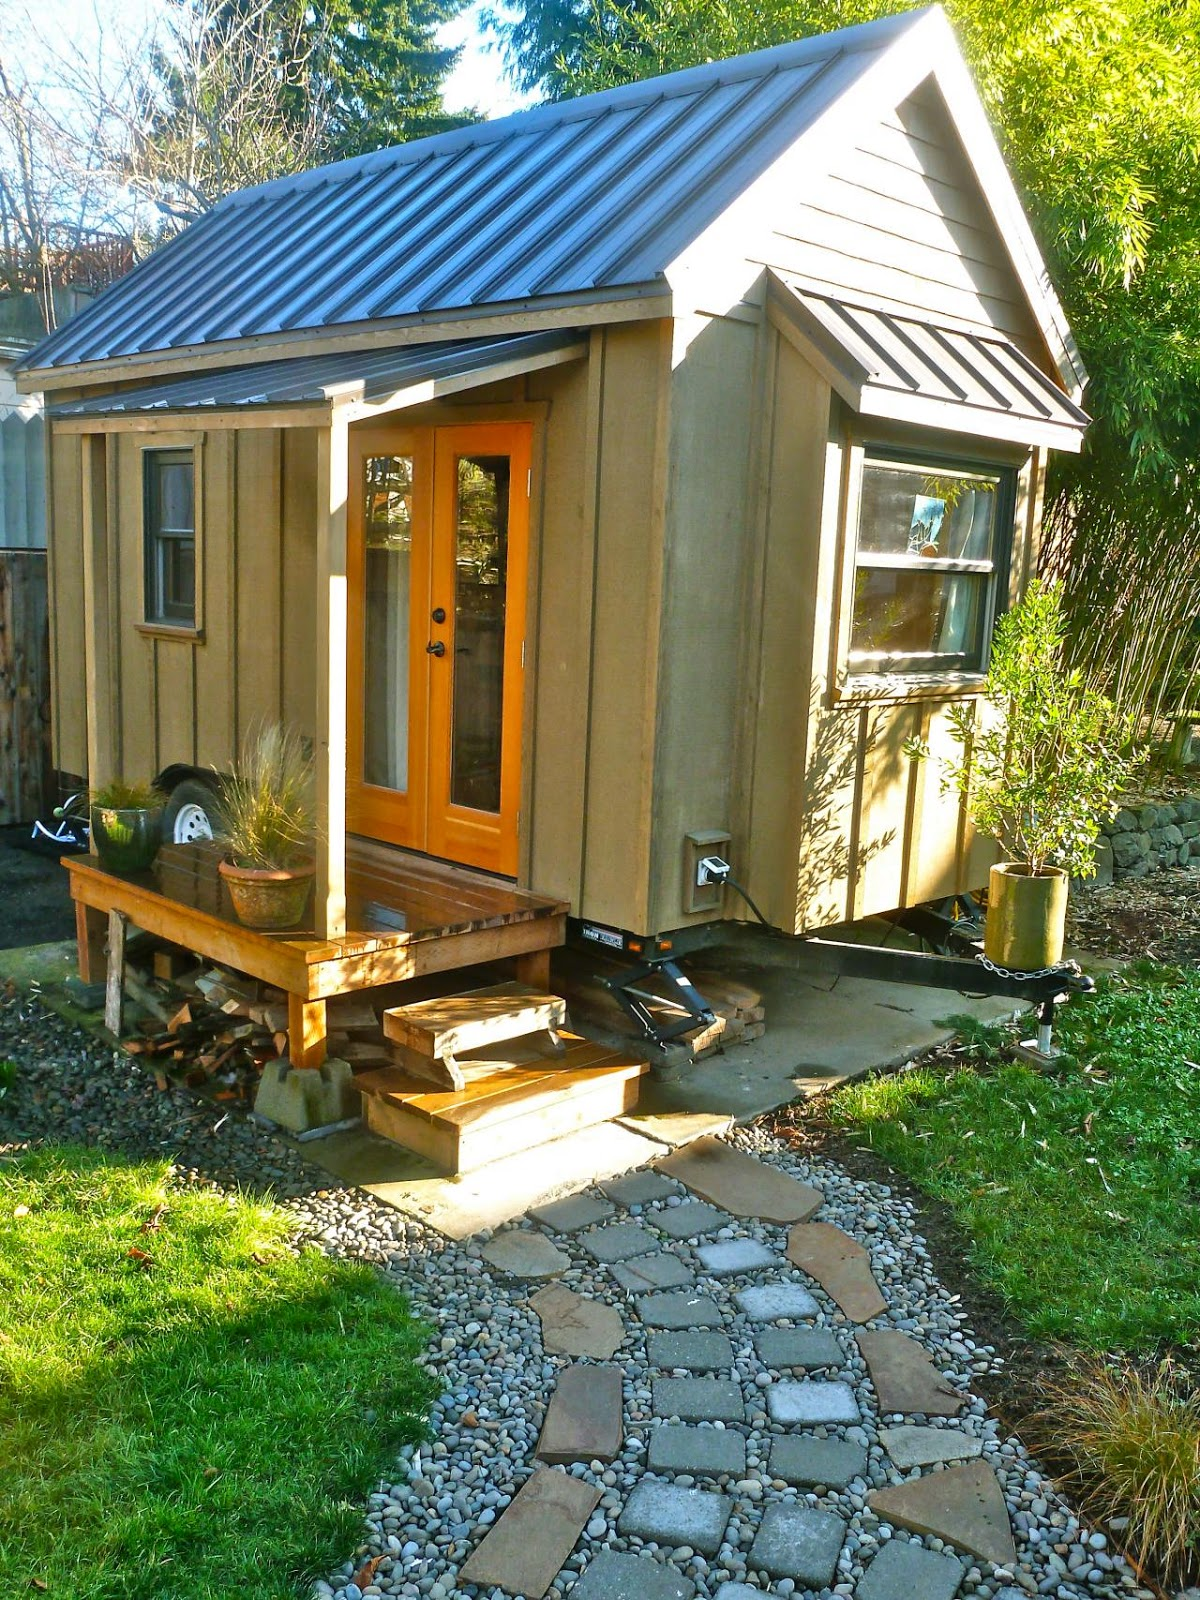 Small Homes Interior Retire In Style Blog Quick Guide Would Tiny House Living